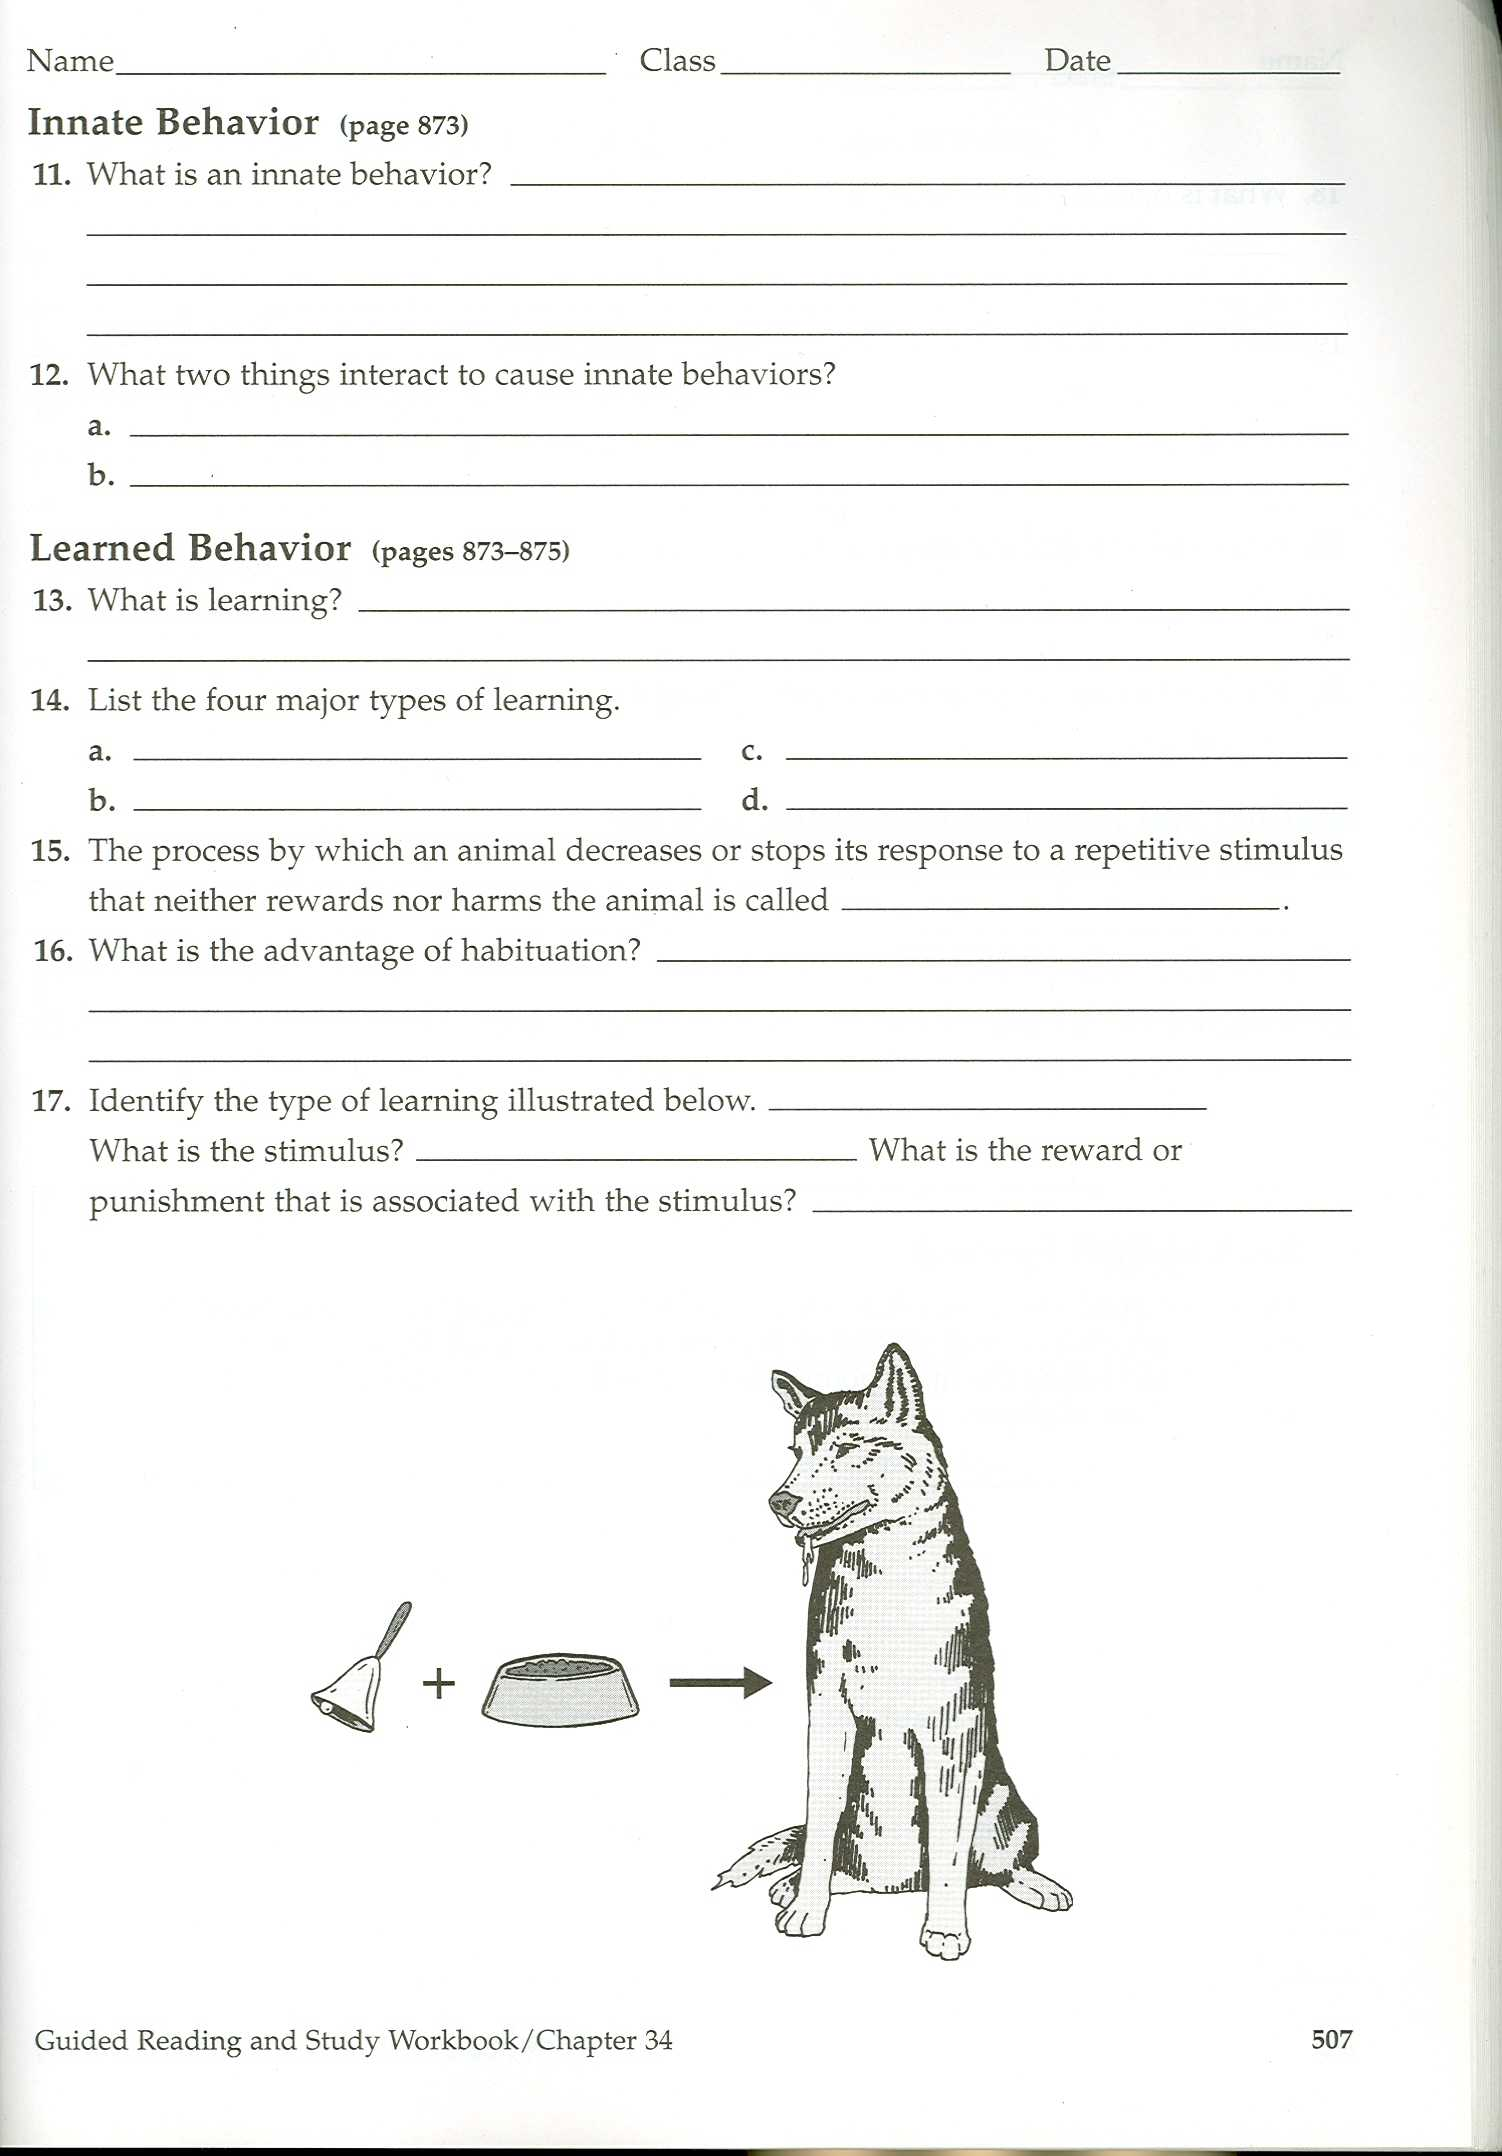 Learned Behavior Worksheet